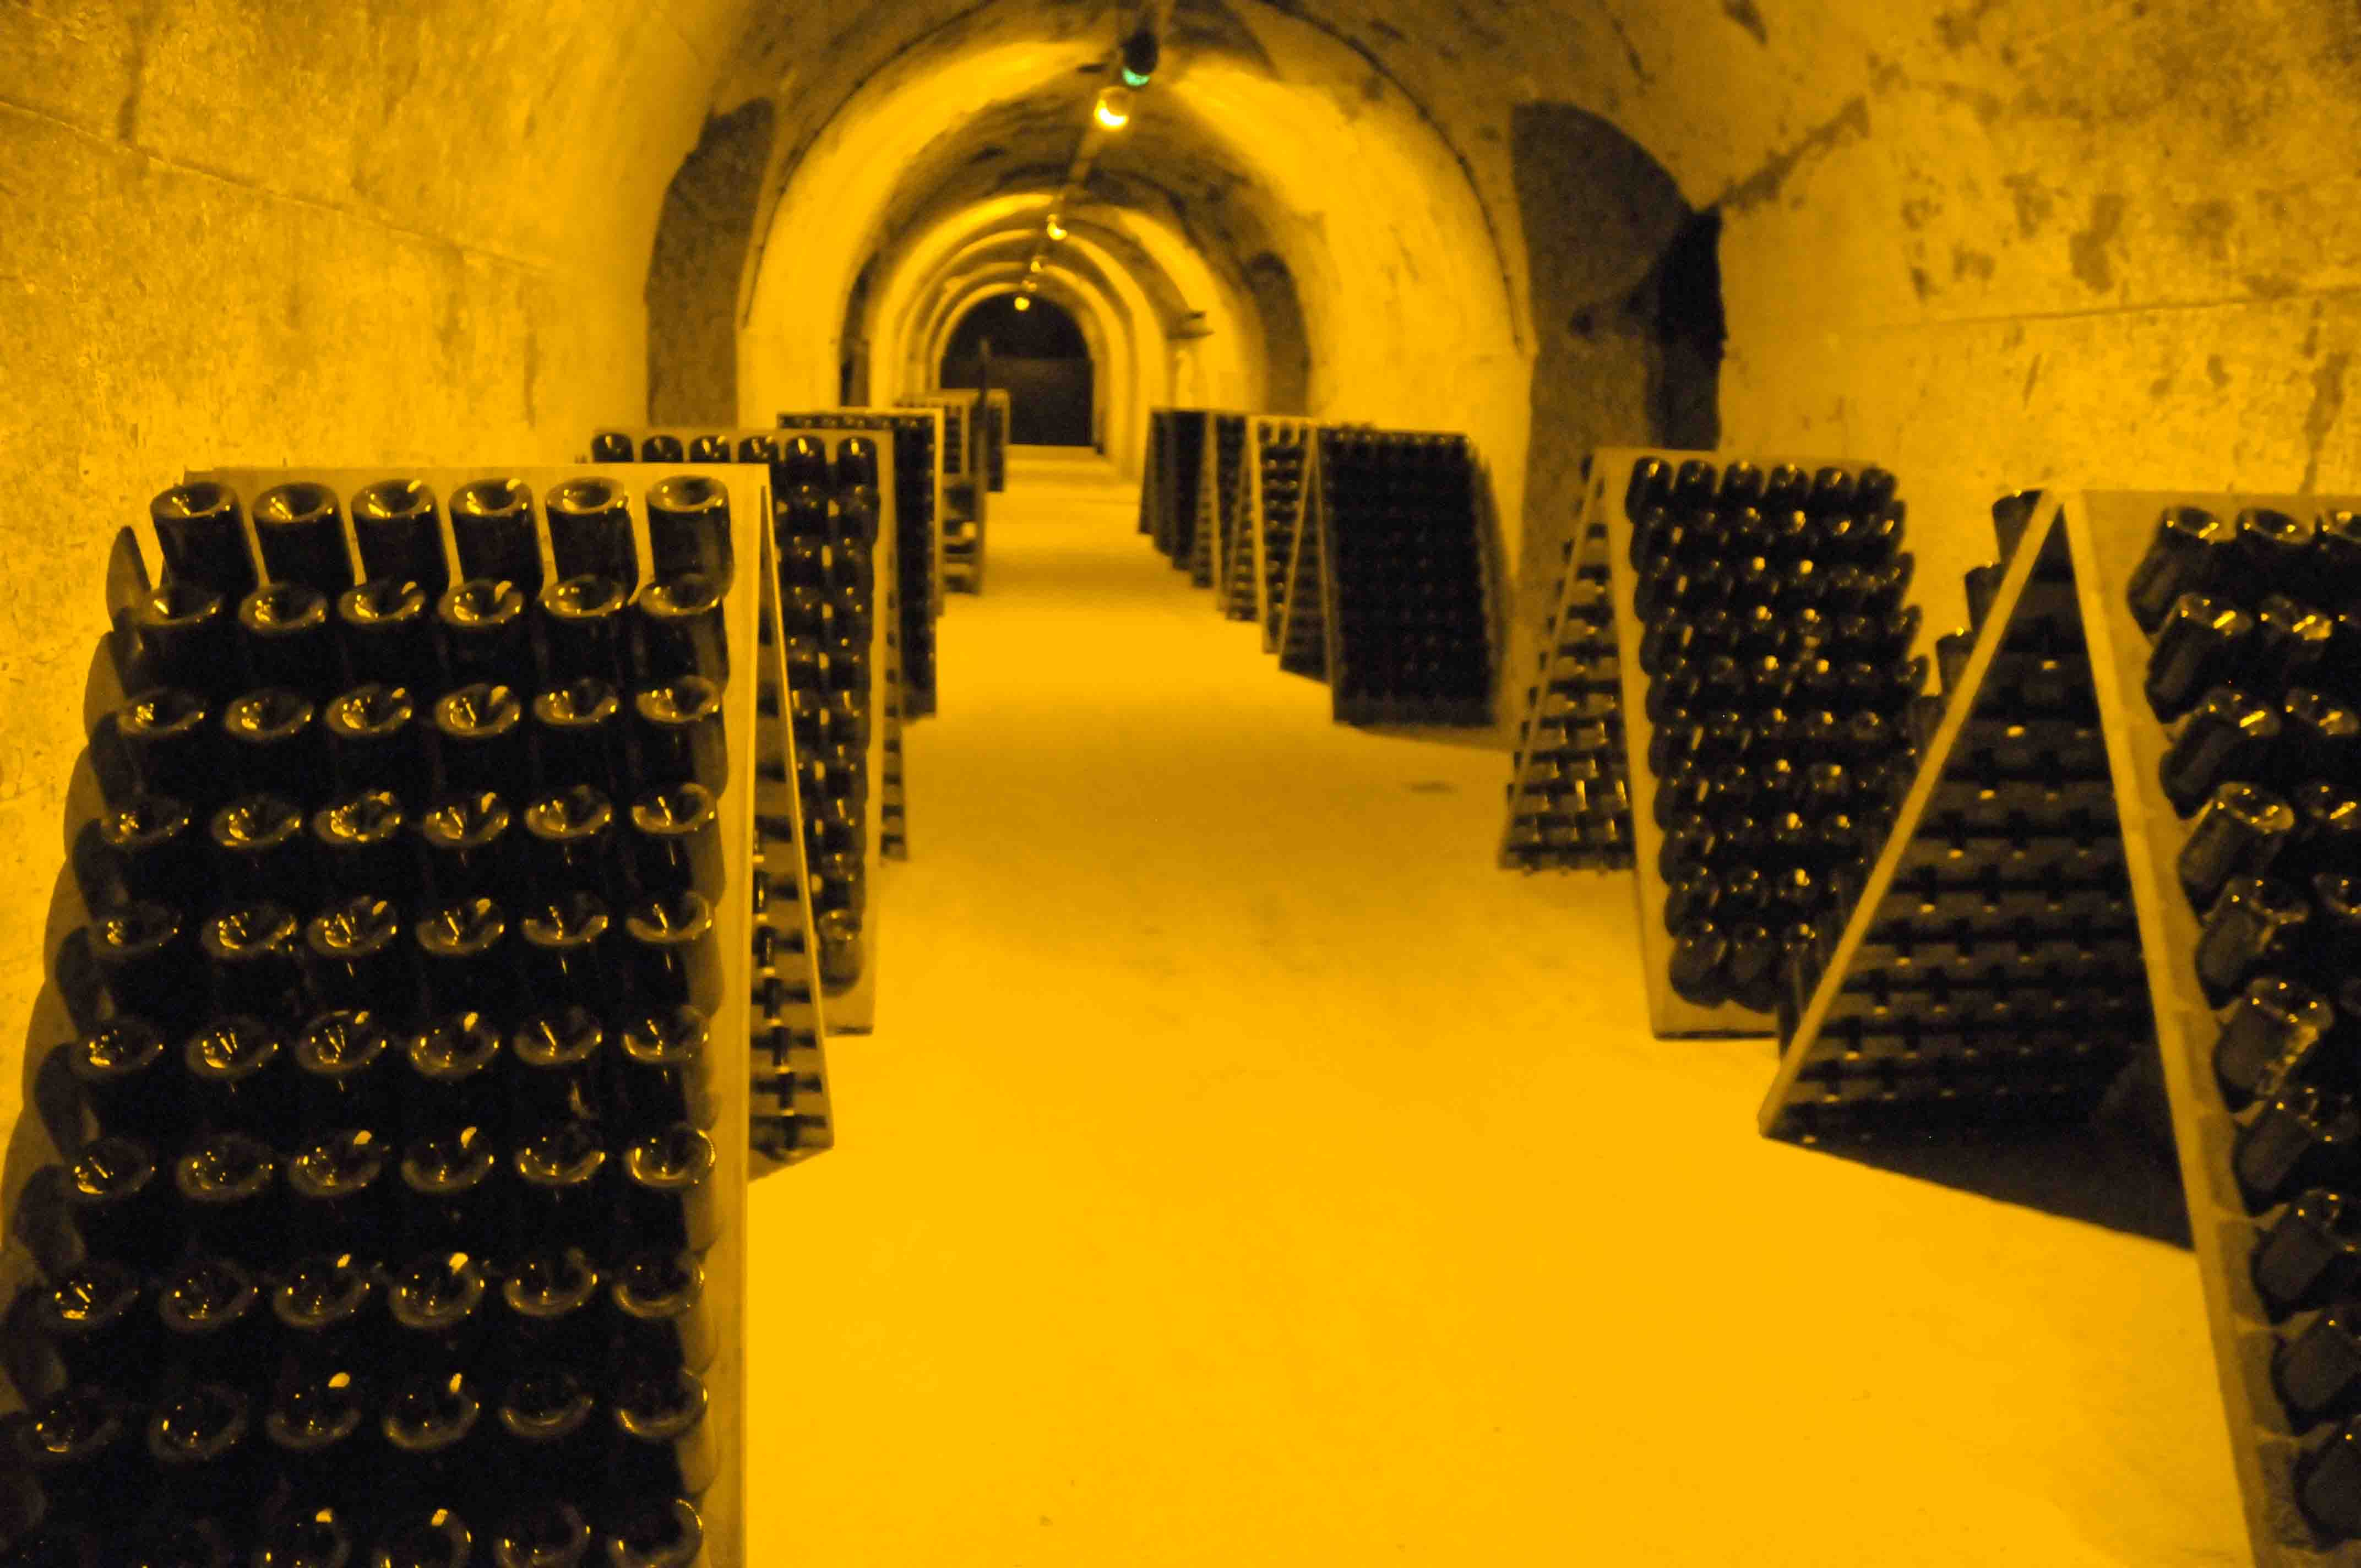 FRANCE - Champagne- 51  Reims: les crayres des Champagnes Taittinger